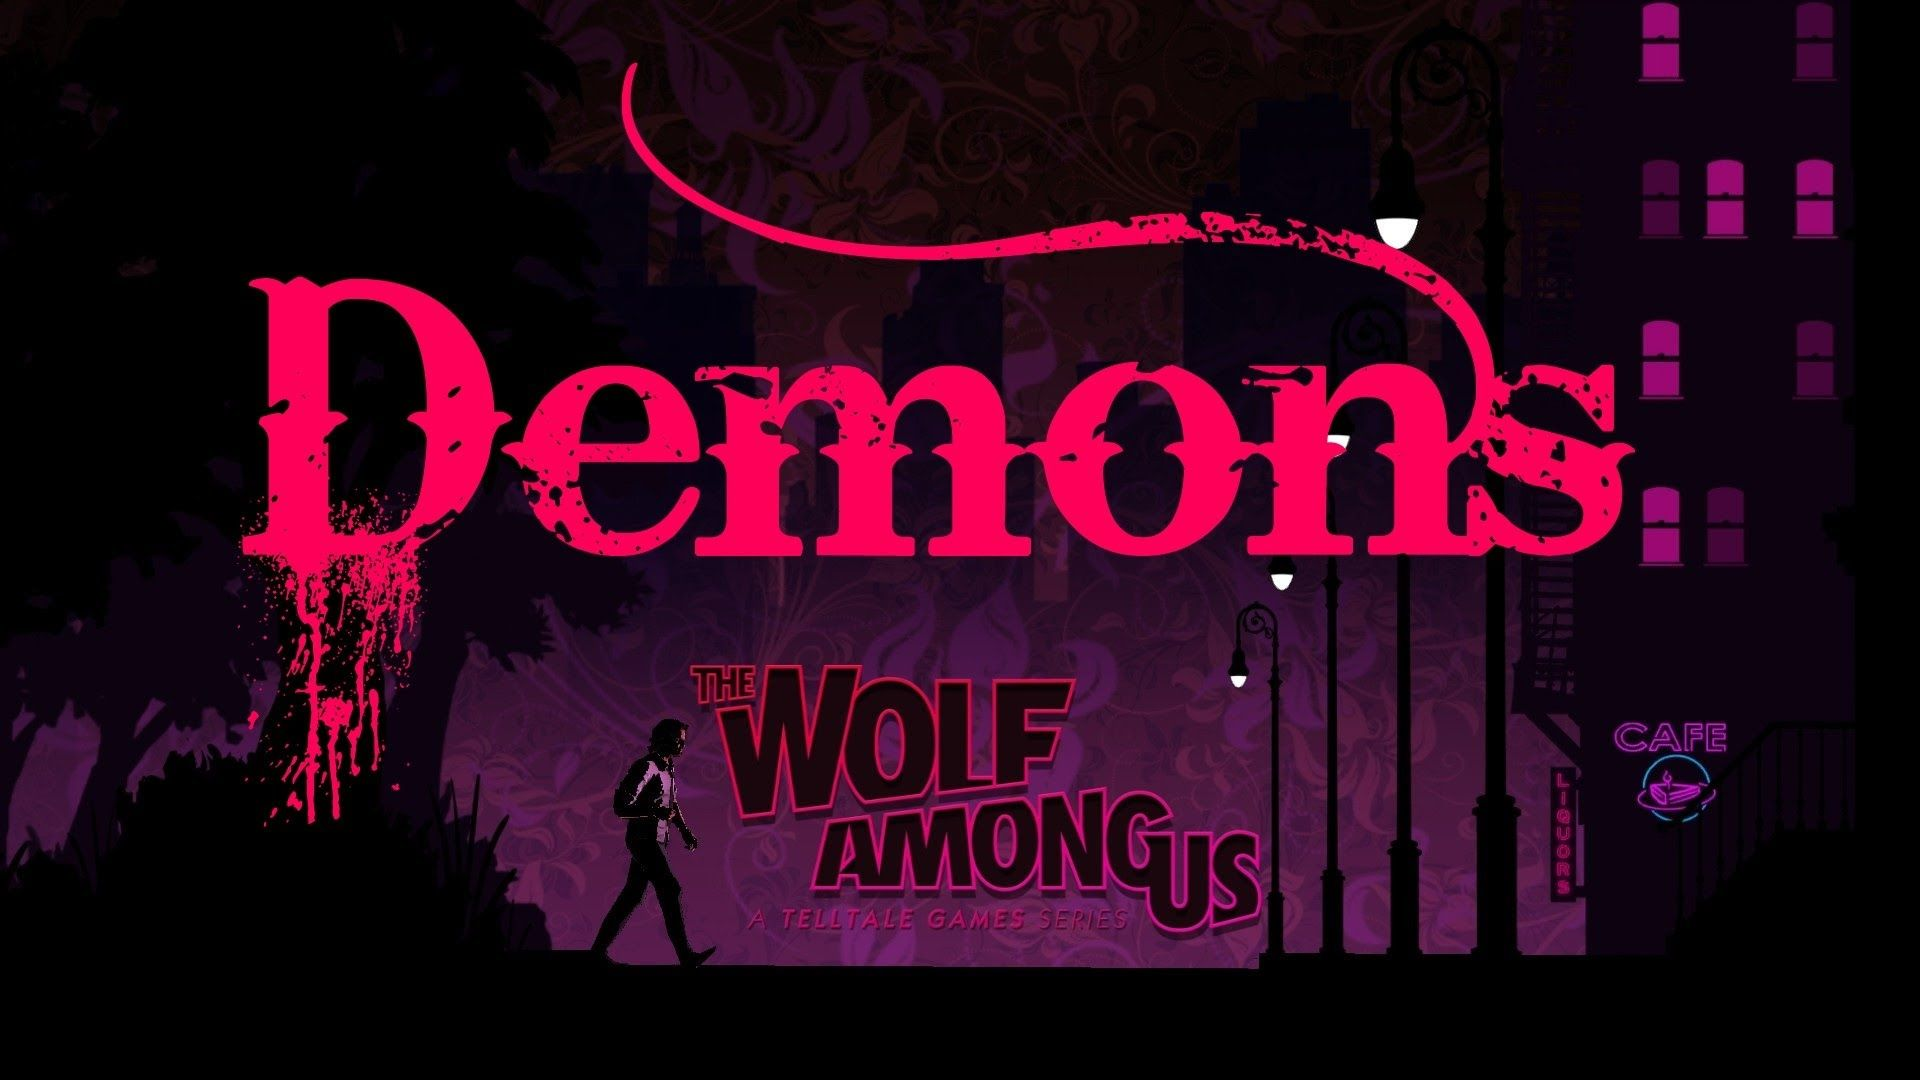 The Wolf Among Us Demons By Imagine Dragons The Wolf Among Us Imagine Dragons Wolf